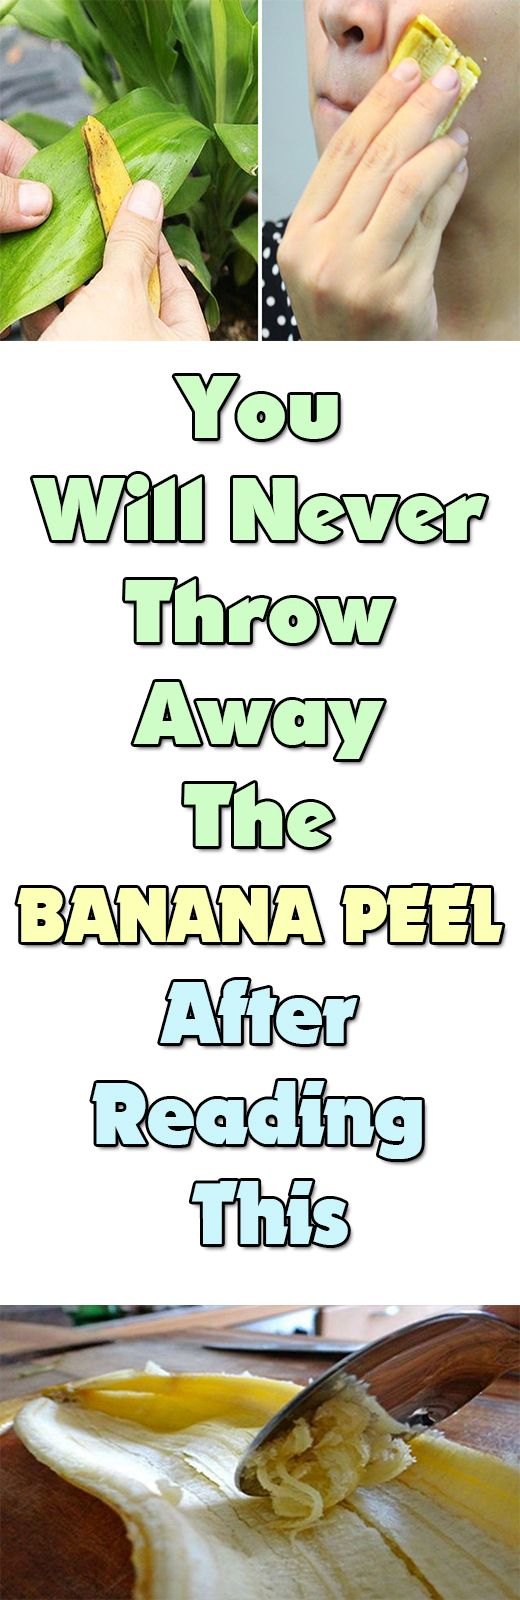 You Will Never Throw Away The Banana Peel After Reading This  Banana peel contains antifungal, antibiotic and enzymatic properties that can be put to good use. It is high in vitamins B6, B12, magnesium and potassium. Plus they're moist and they're nutritious.